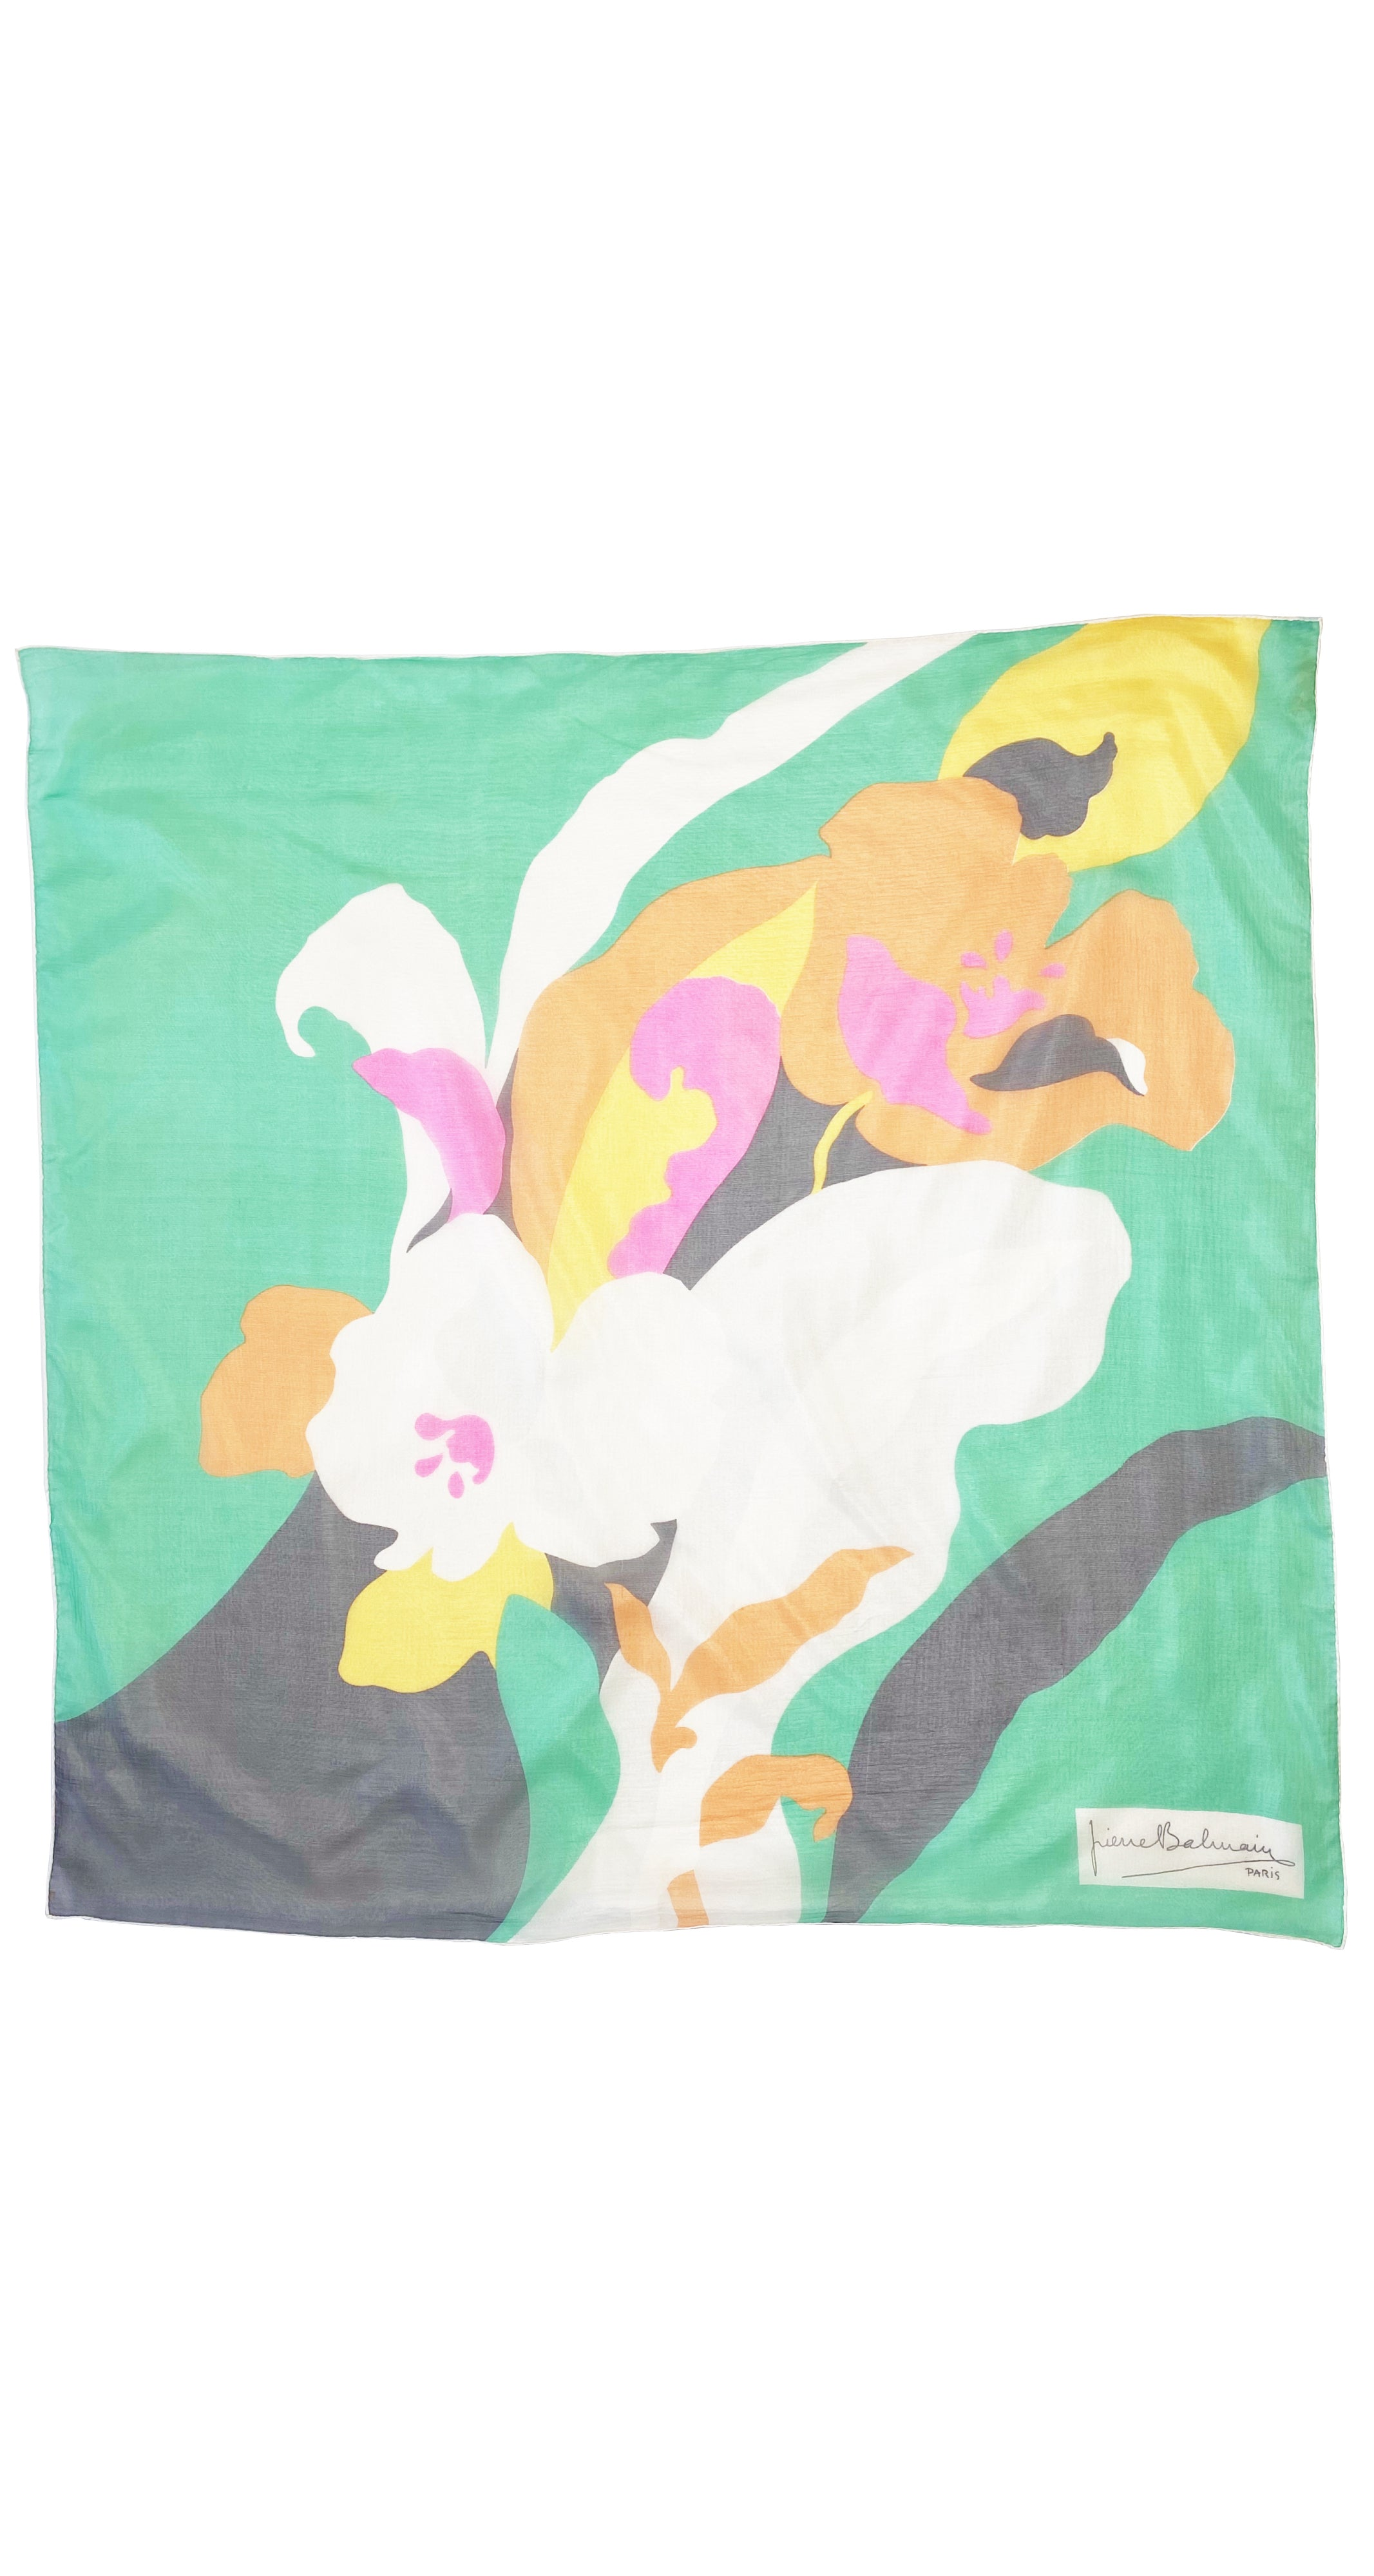 1960s Vibrant Abstract Floral Silk Chiffon Scarf